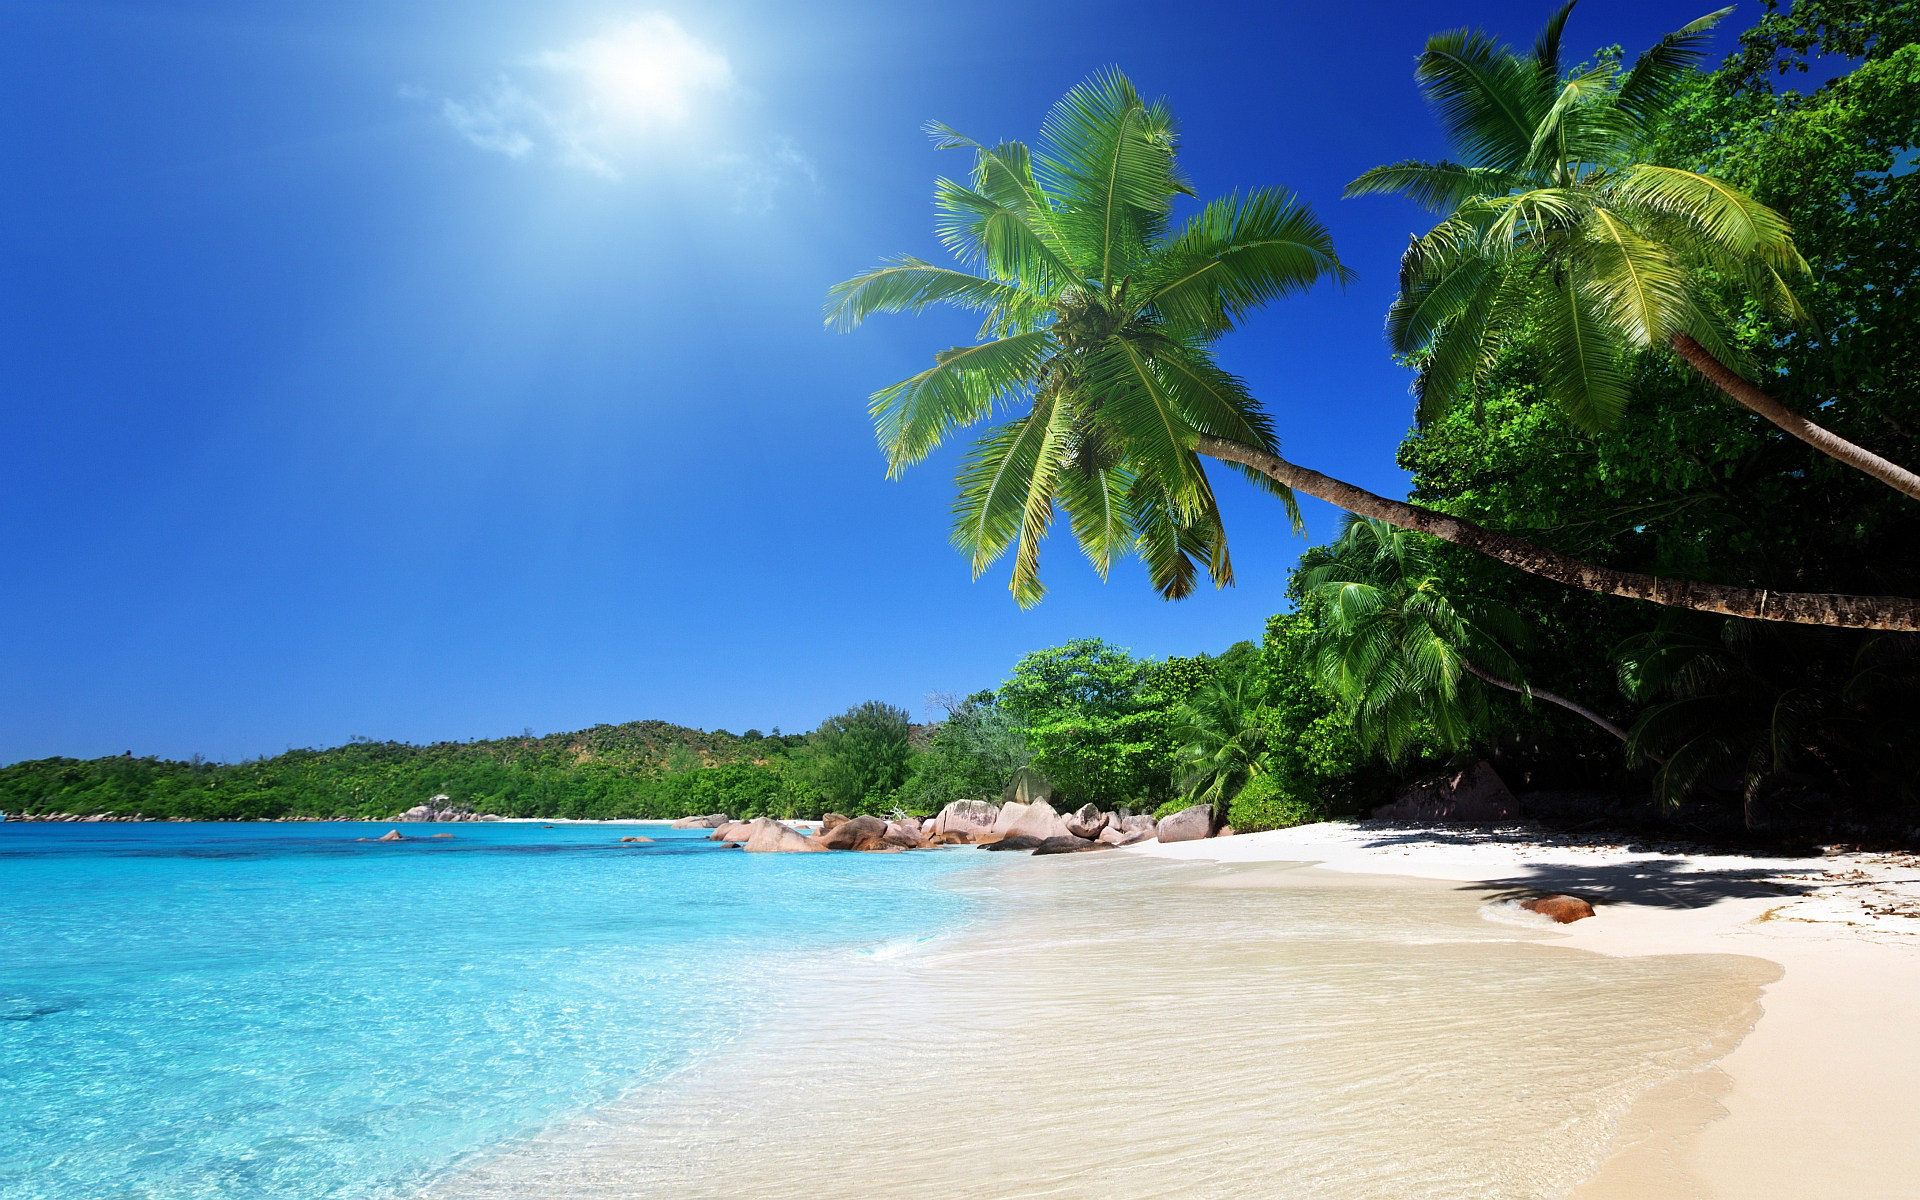 Tropical Carribean Beach Wallpaper 1964 Wallpaper 1920x1200